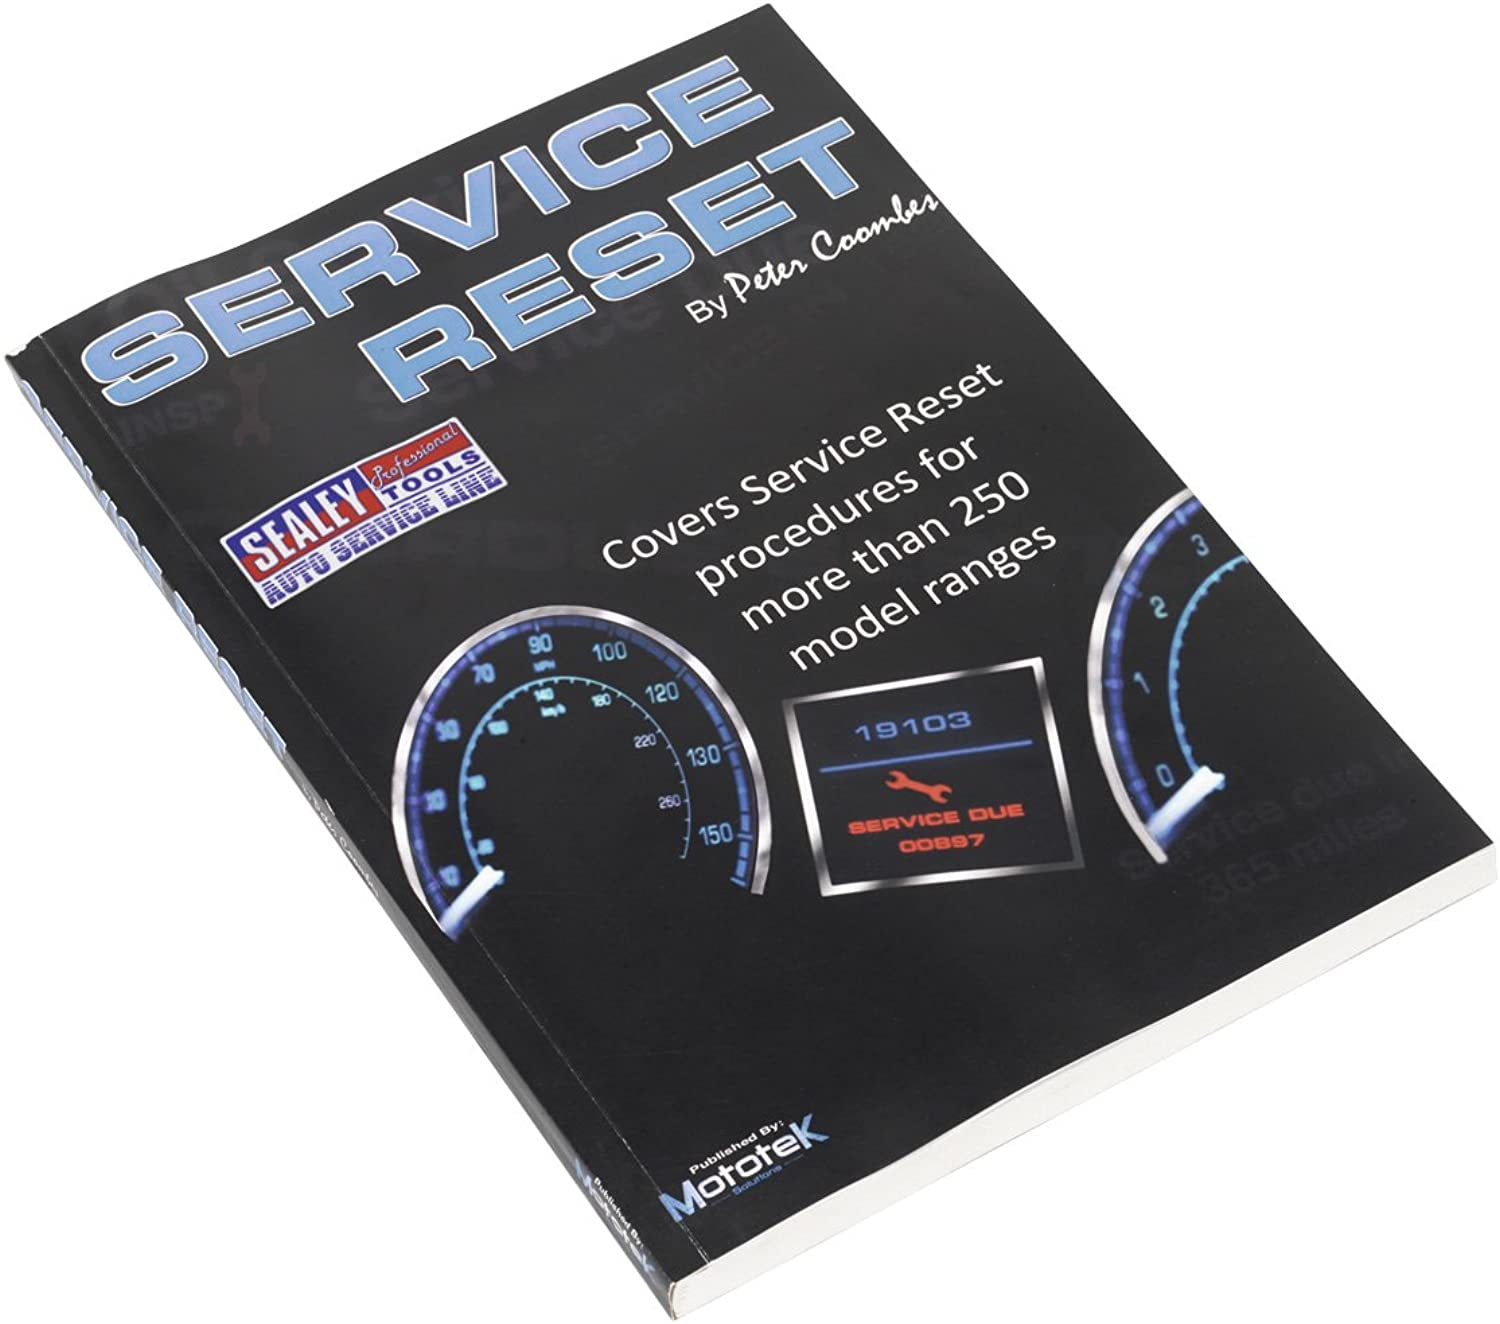 SEALEY Service Reset Manual B0041SUP7A | Angemessener Preis